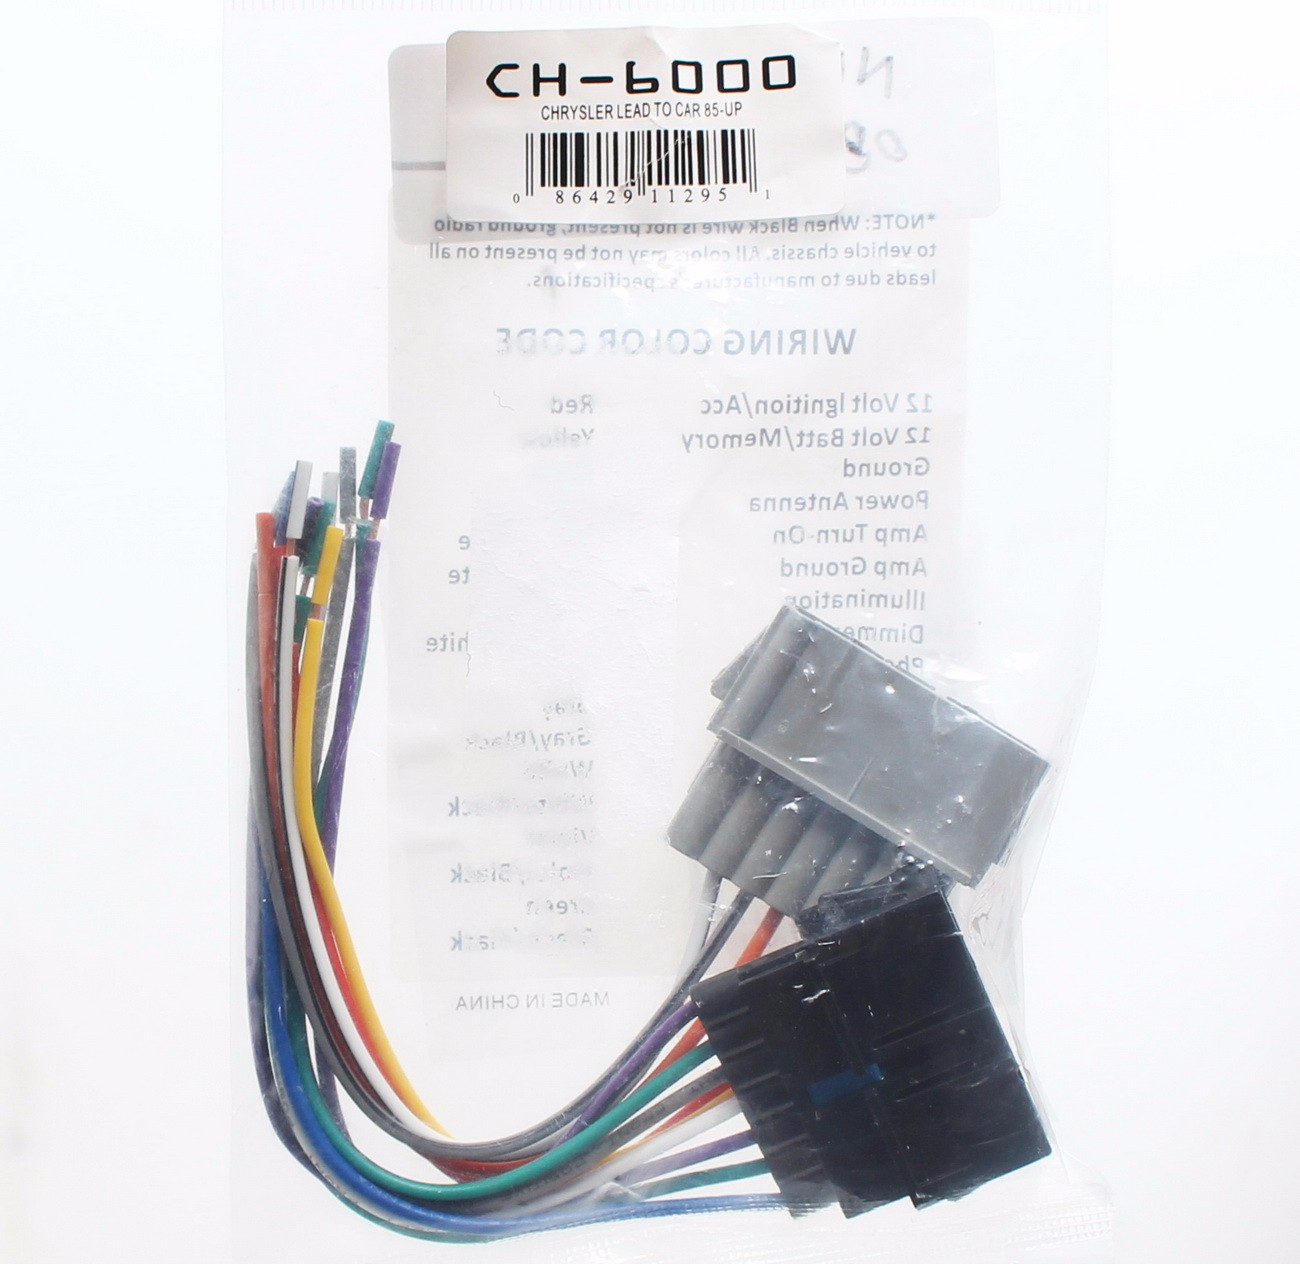 wiring harness for chrysler jeep 1984 2006 car electronics best rh 194 princestaash org